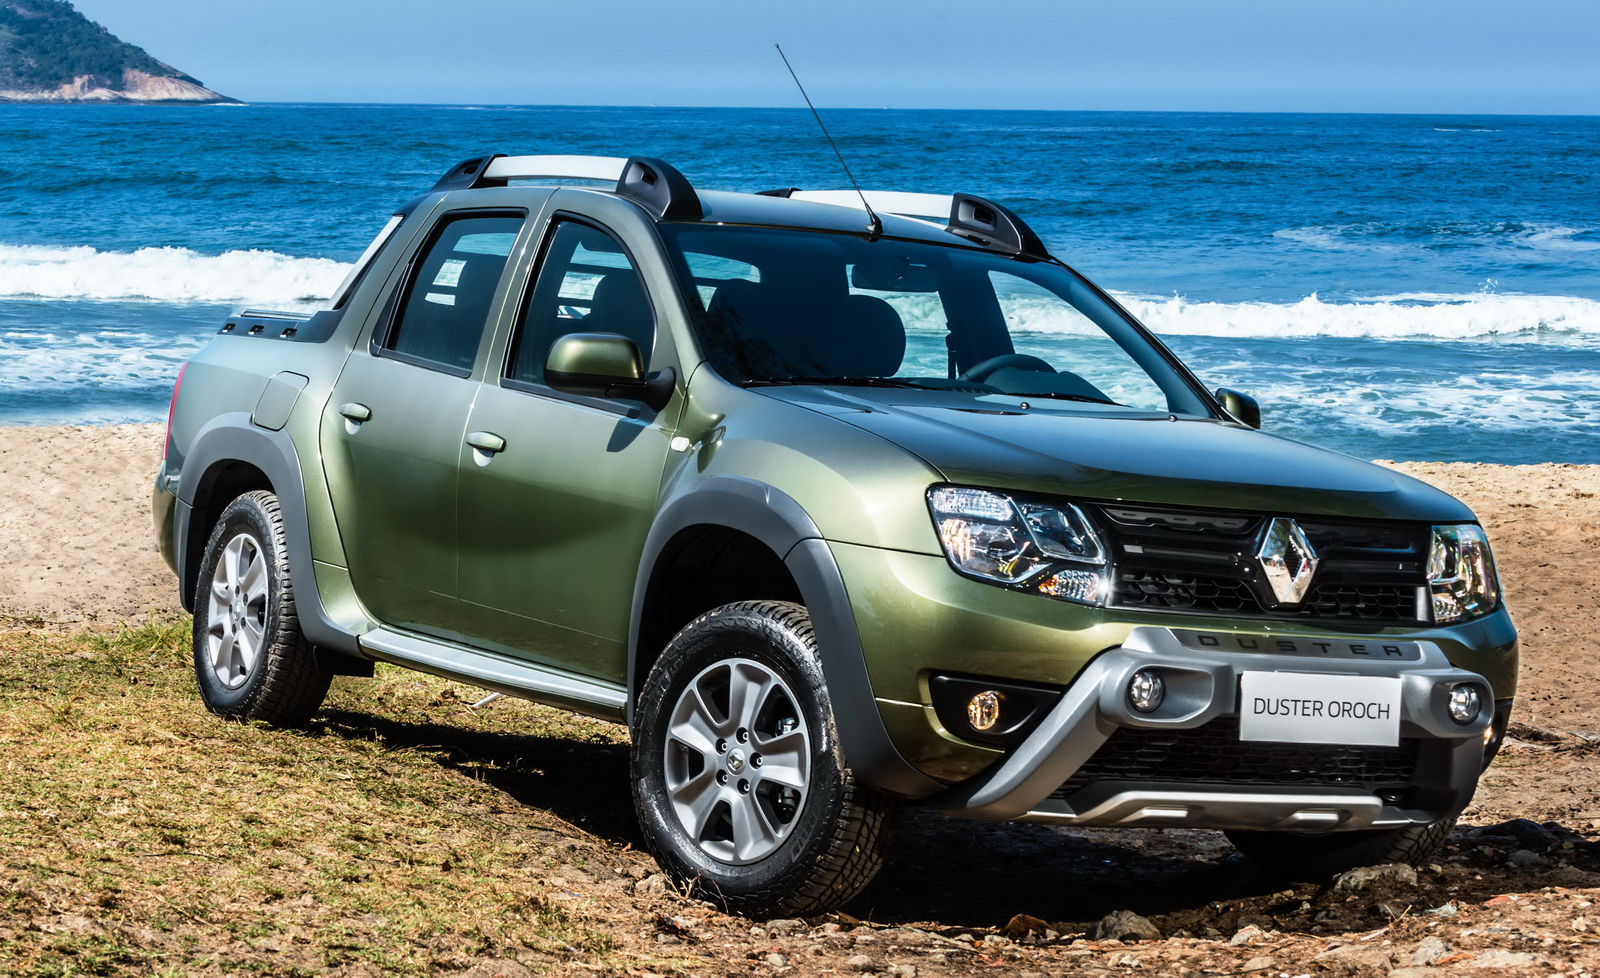 renault duster oroch pick up truck launched in brazil. Black Bedroom Furniture Sets. Home Design Ideas